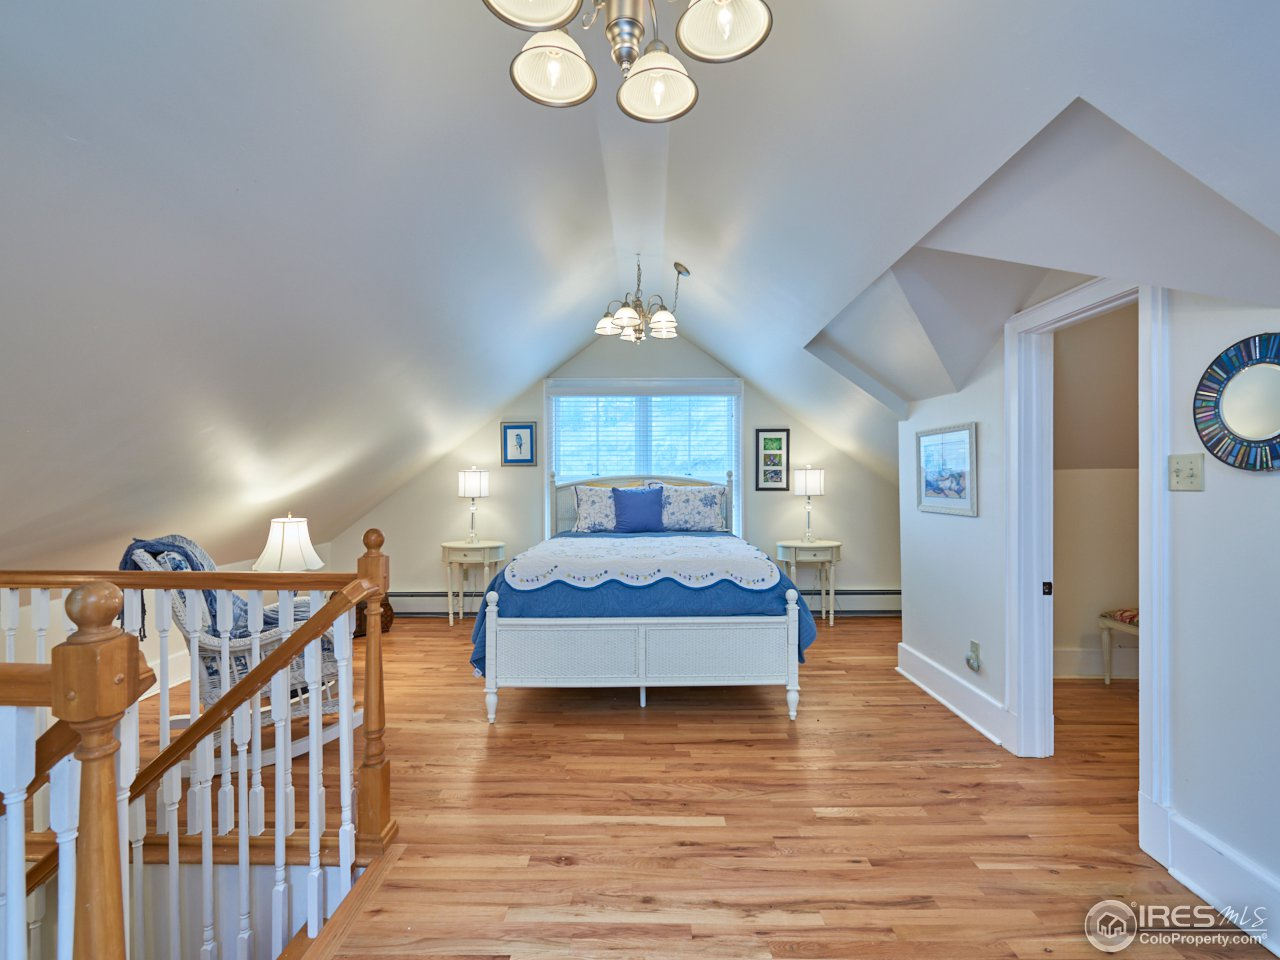 Upper level master bedroom